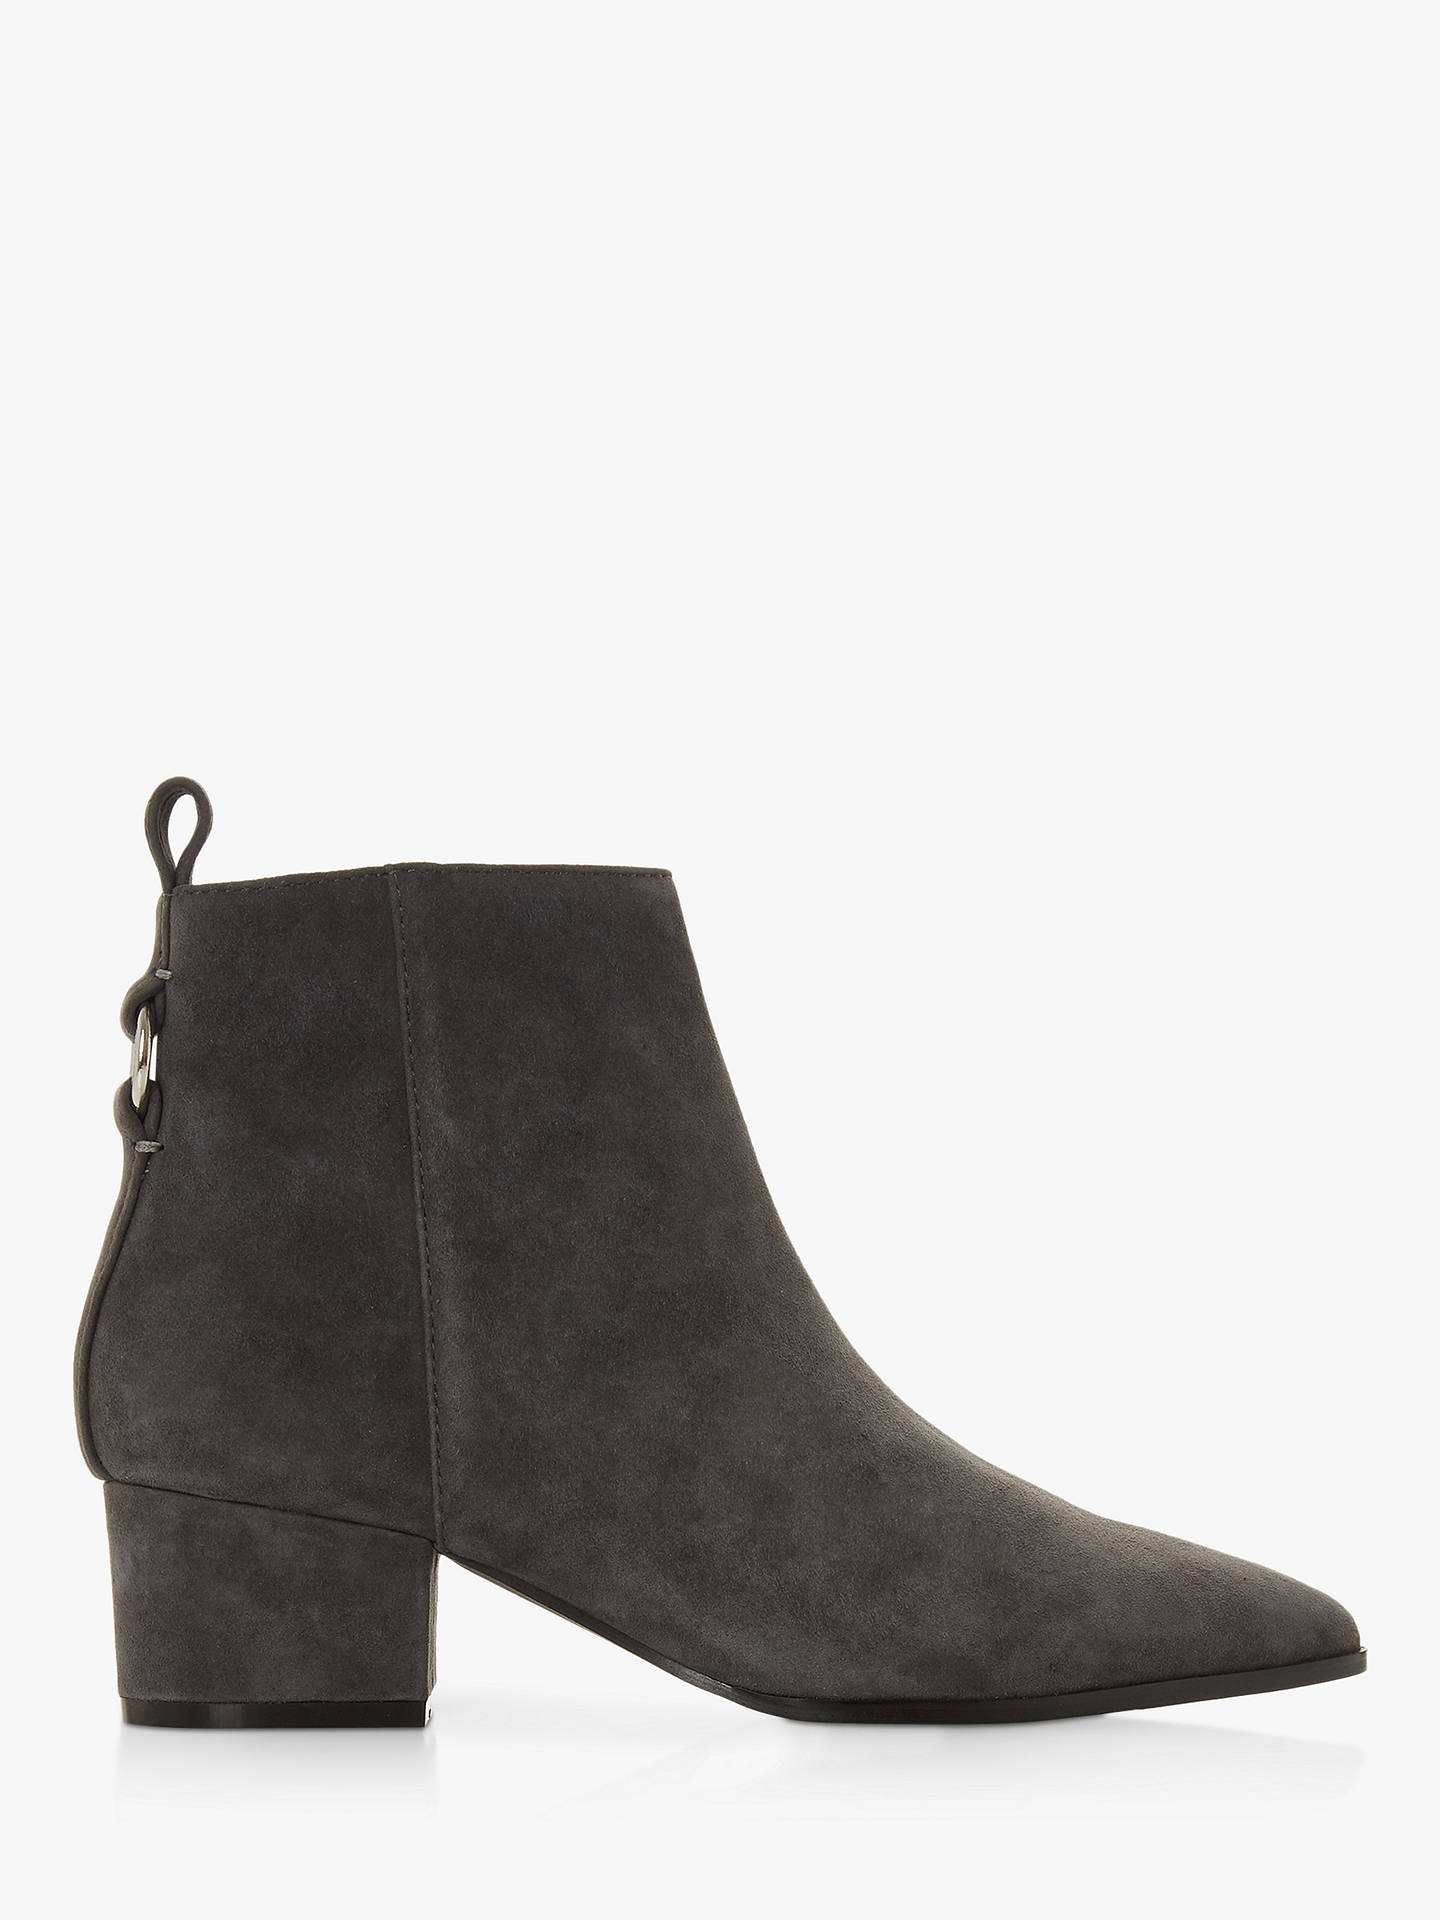 BuySteve Madden Clover Side Zip Ankle Boots, Grey Suede, 3 Online at johnlewis.com